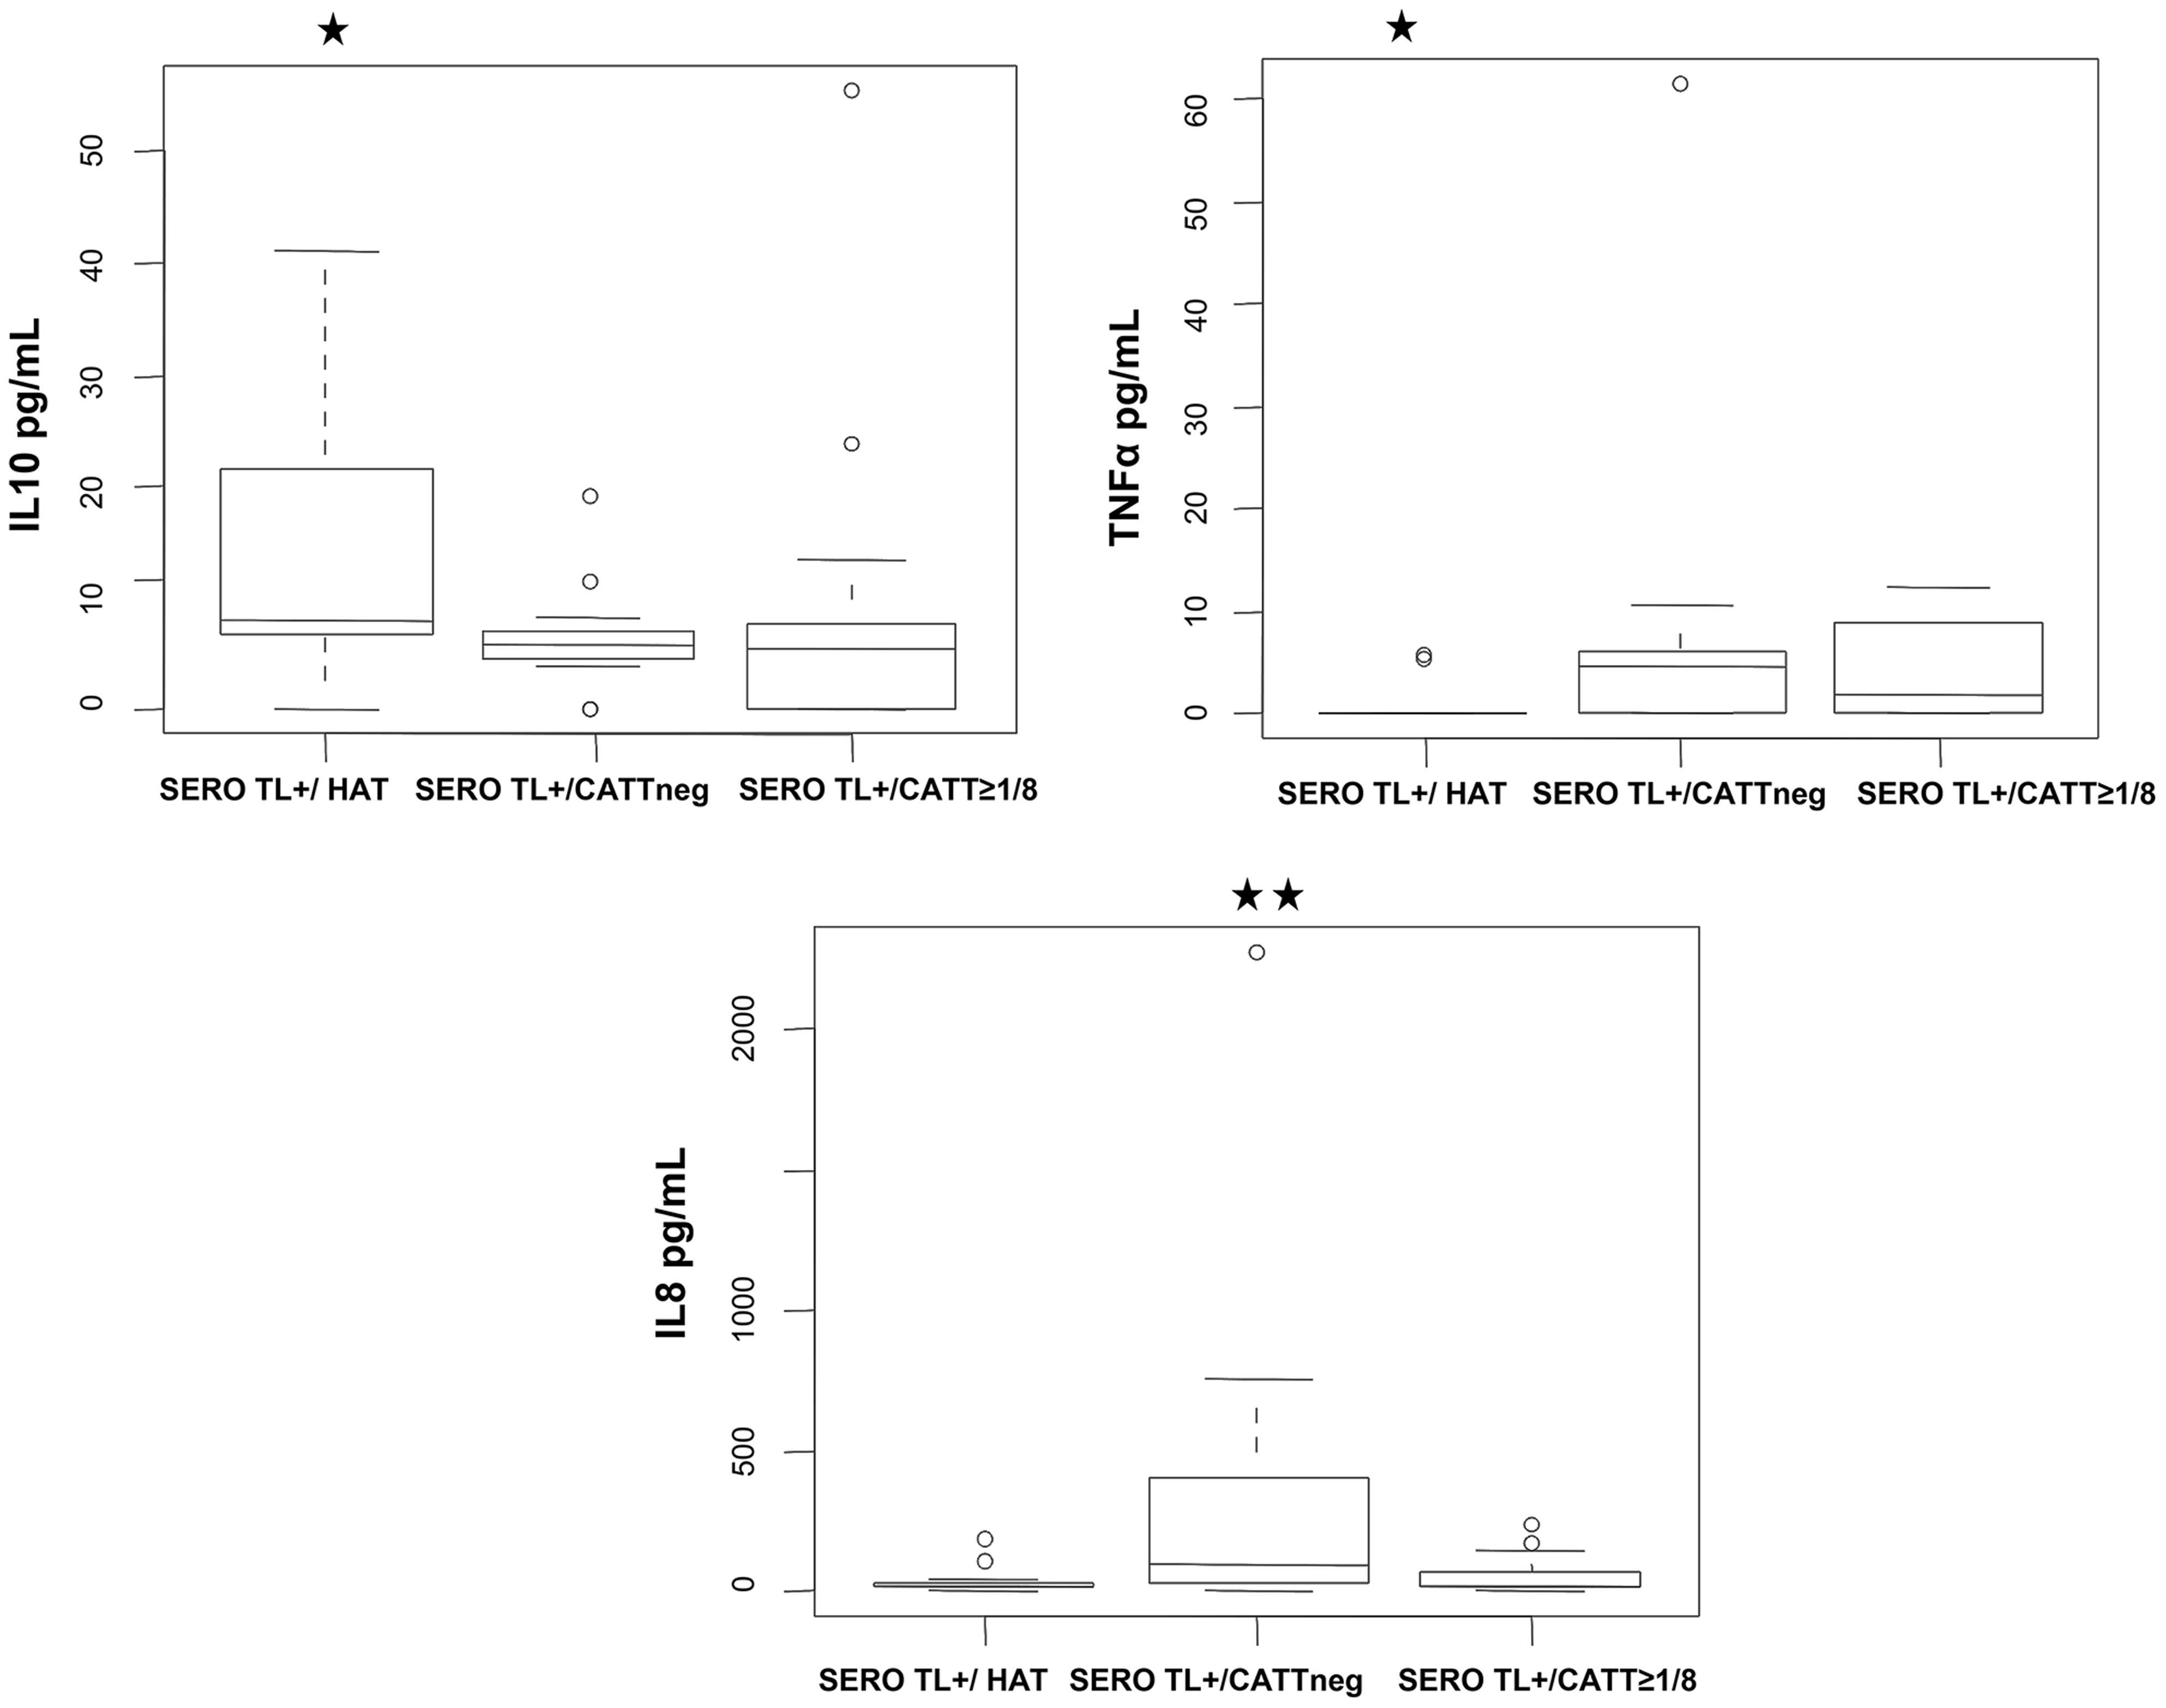 Box-plots of IL10, TNFα, and IL8 concentrations measured in the plasma of SERO TL+ subjects at study inclusion according to follow-up results.